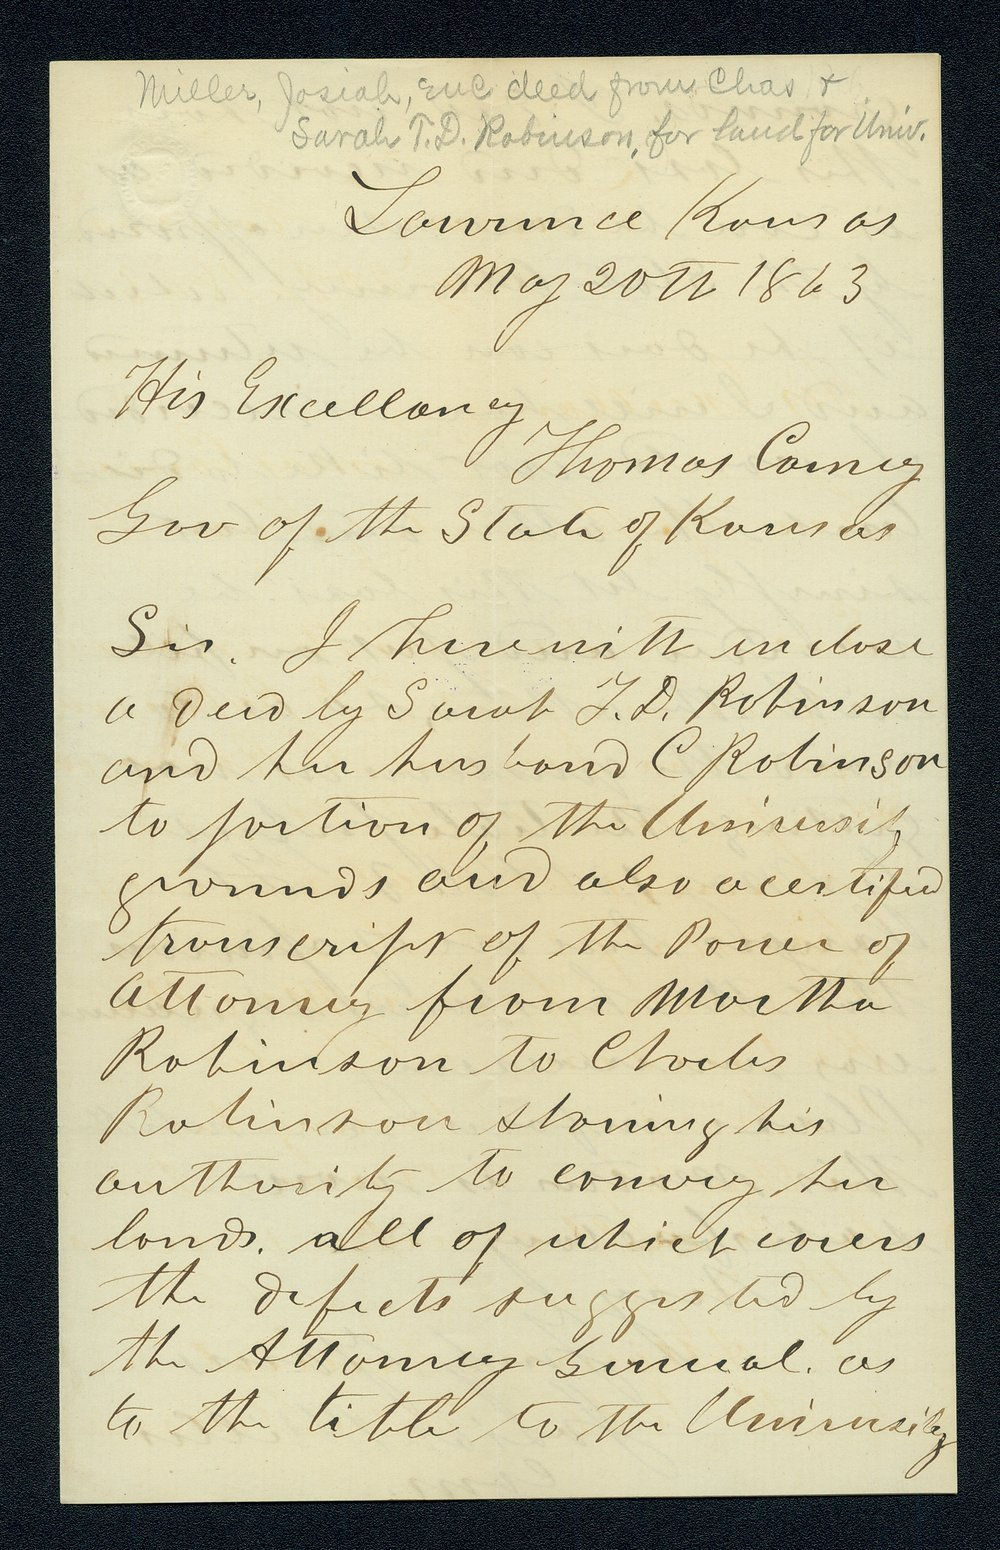 Governor Thomas Carney college and university lands, 1863, correspondence - 7